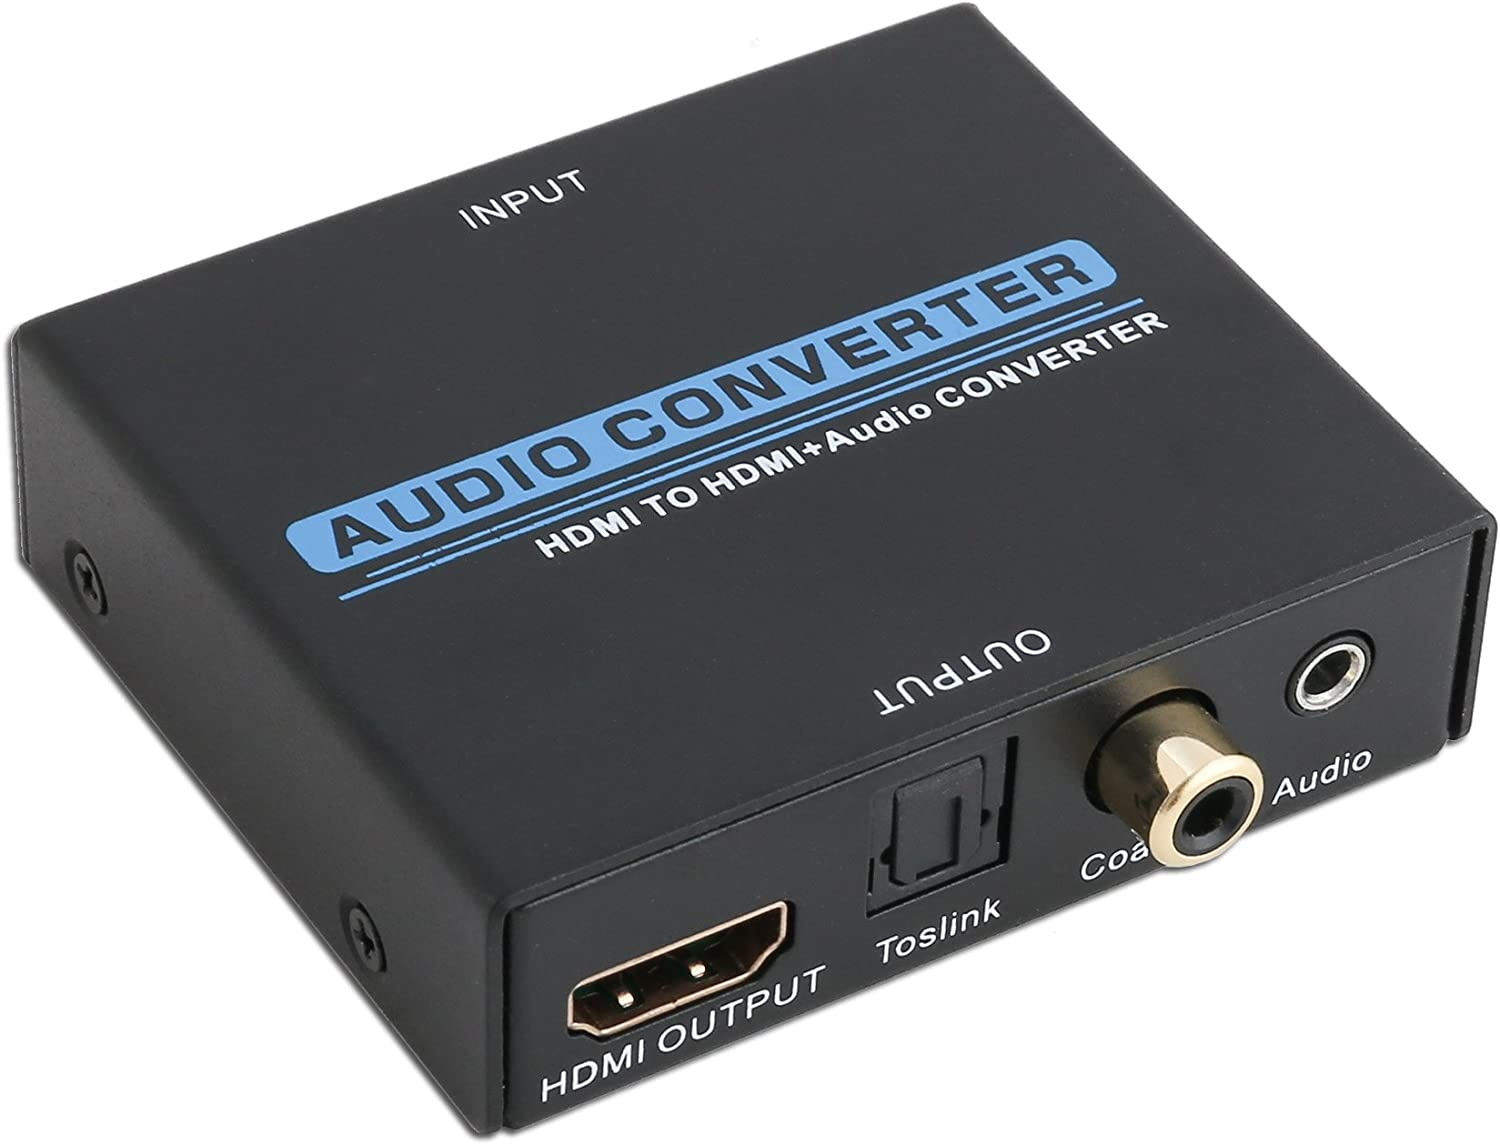 IO Crest Digital HDMI Audio Extractor Converter SPDIF + 3.5MM Output Supports HDCP 2.2, Dolby Digital/DTS Passthrough